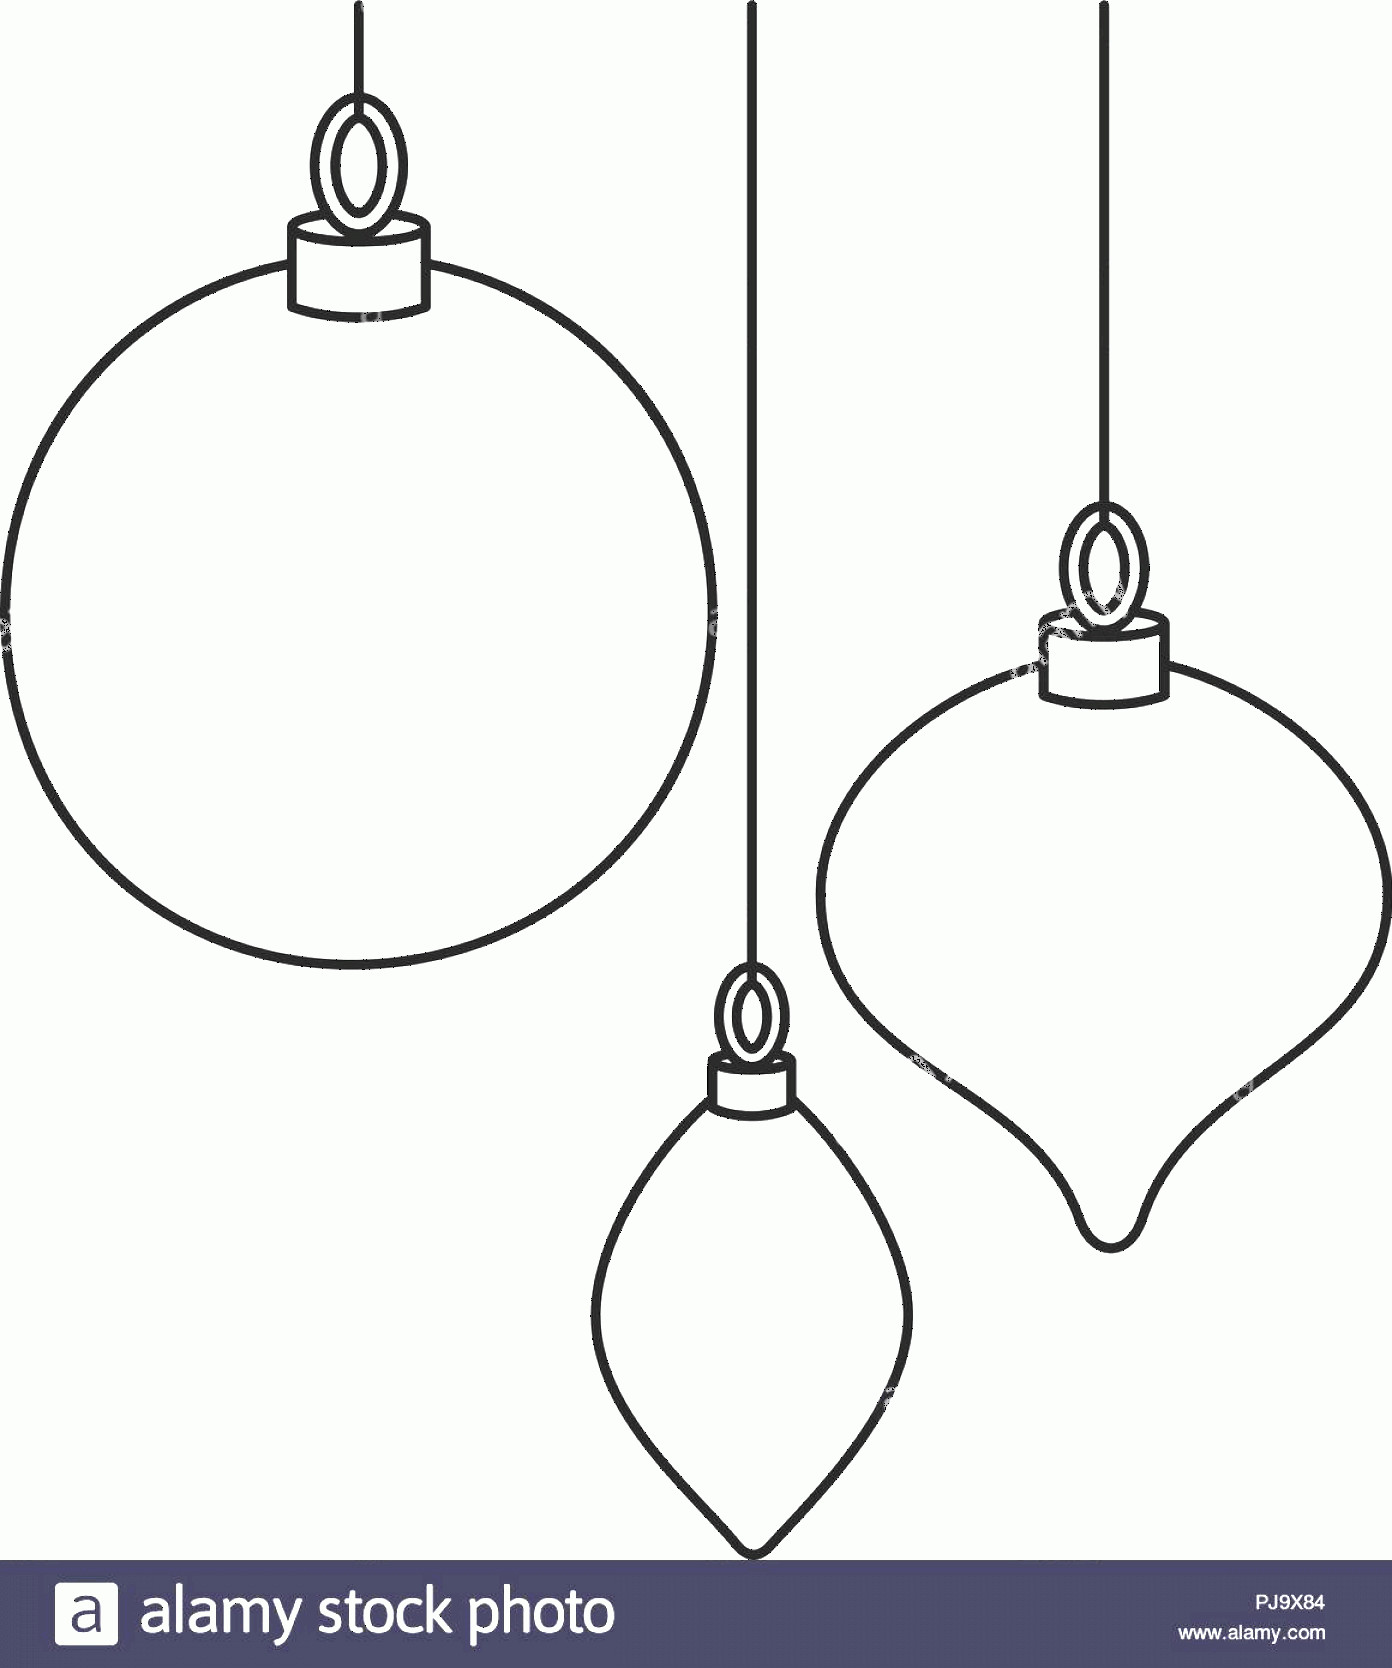 Black And White Christmas Ornament Vector Art: Line Art Black White Christmas Tree Decorations Image